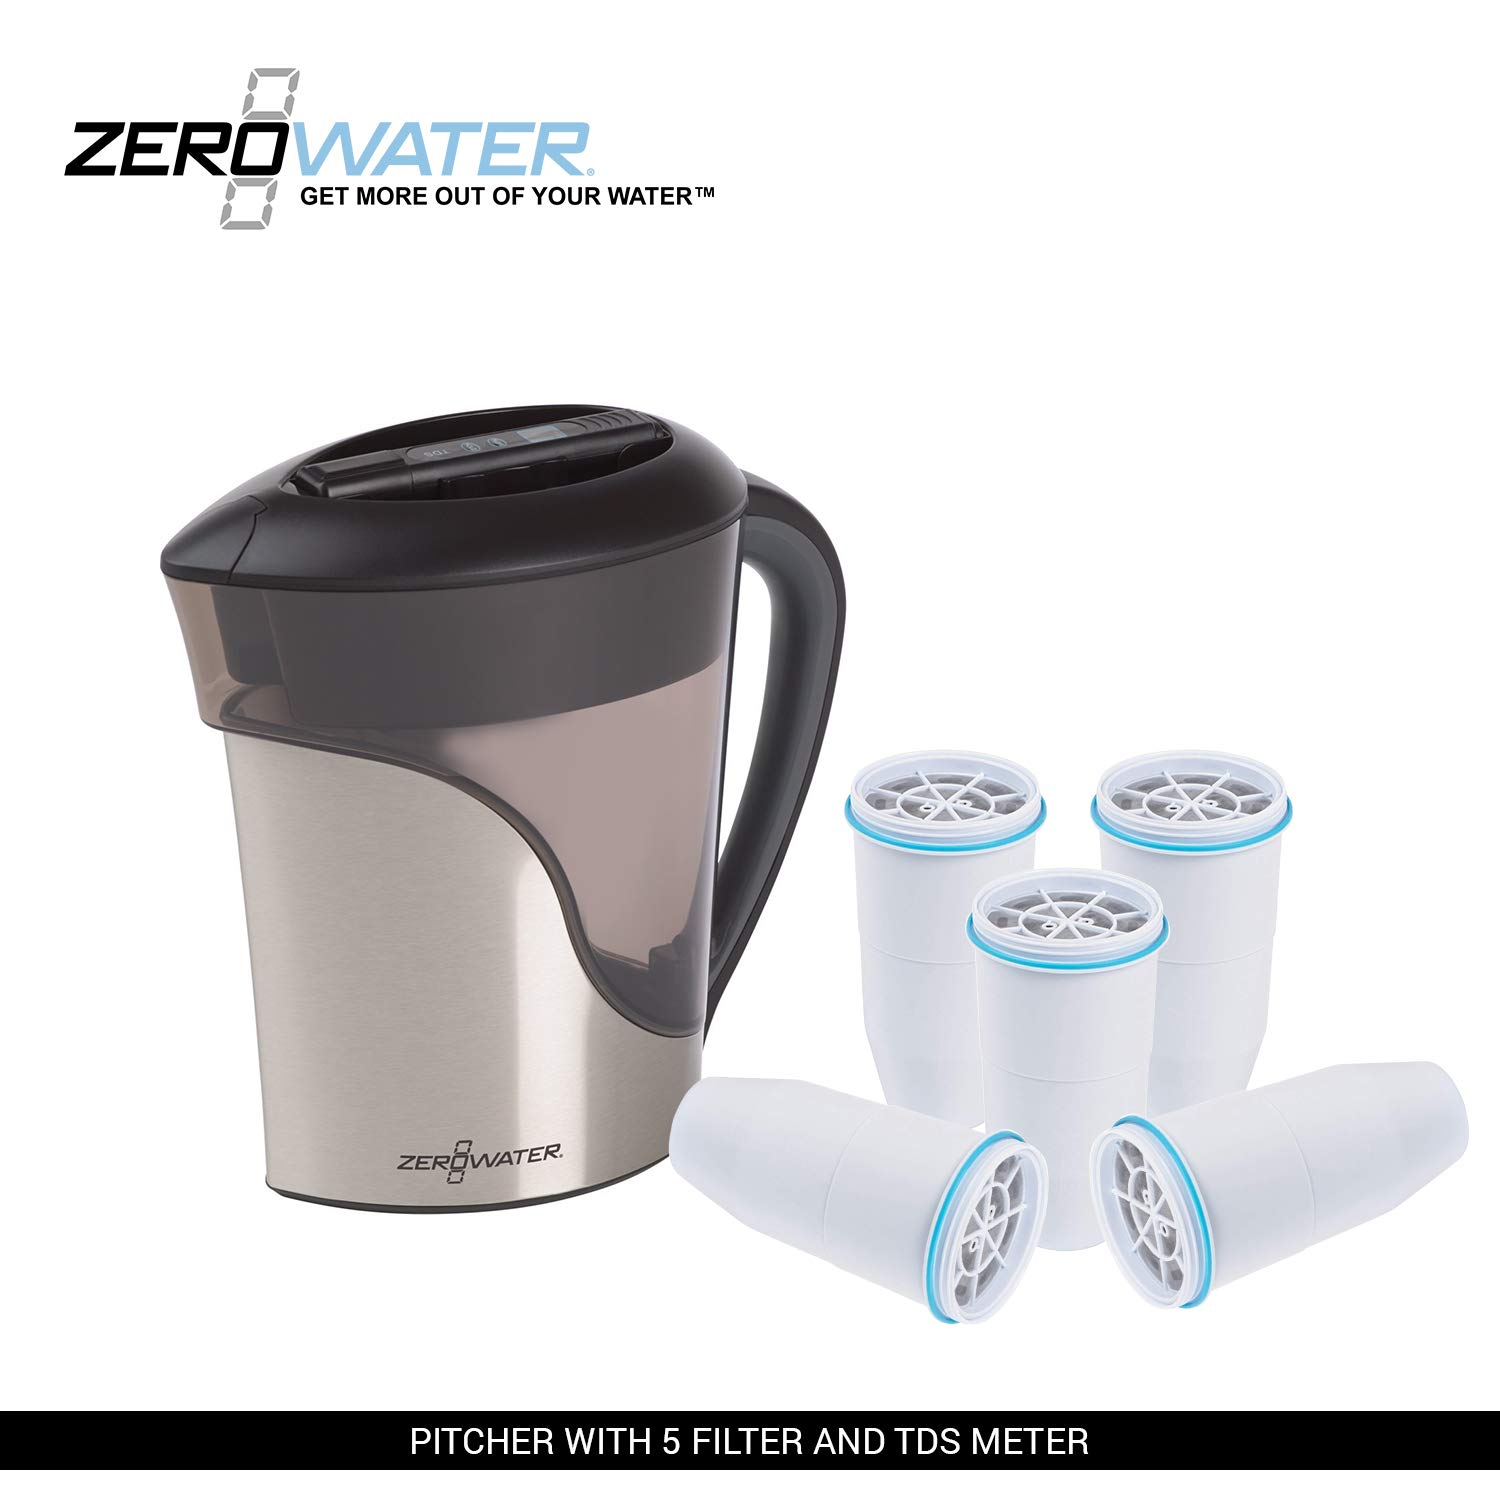 ZeroWater 8-Cup Stainless Steel Pitcher (ZS-008) with Replacement Filters and Free Water Quality Meter (with 2 Filter)